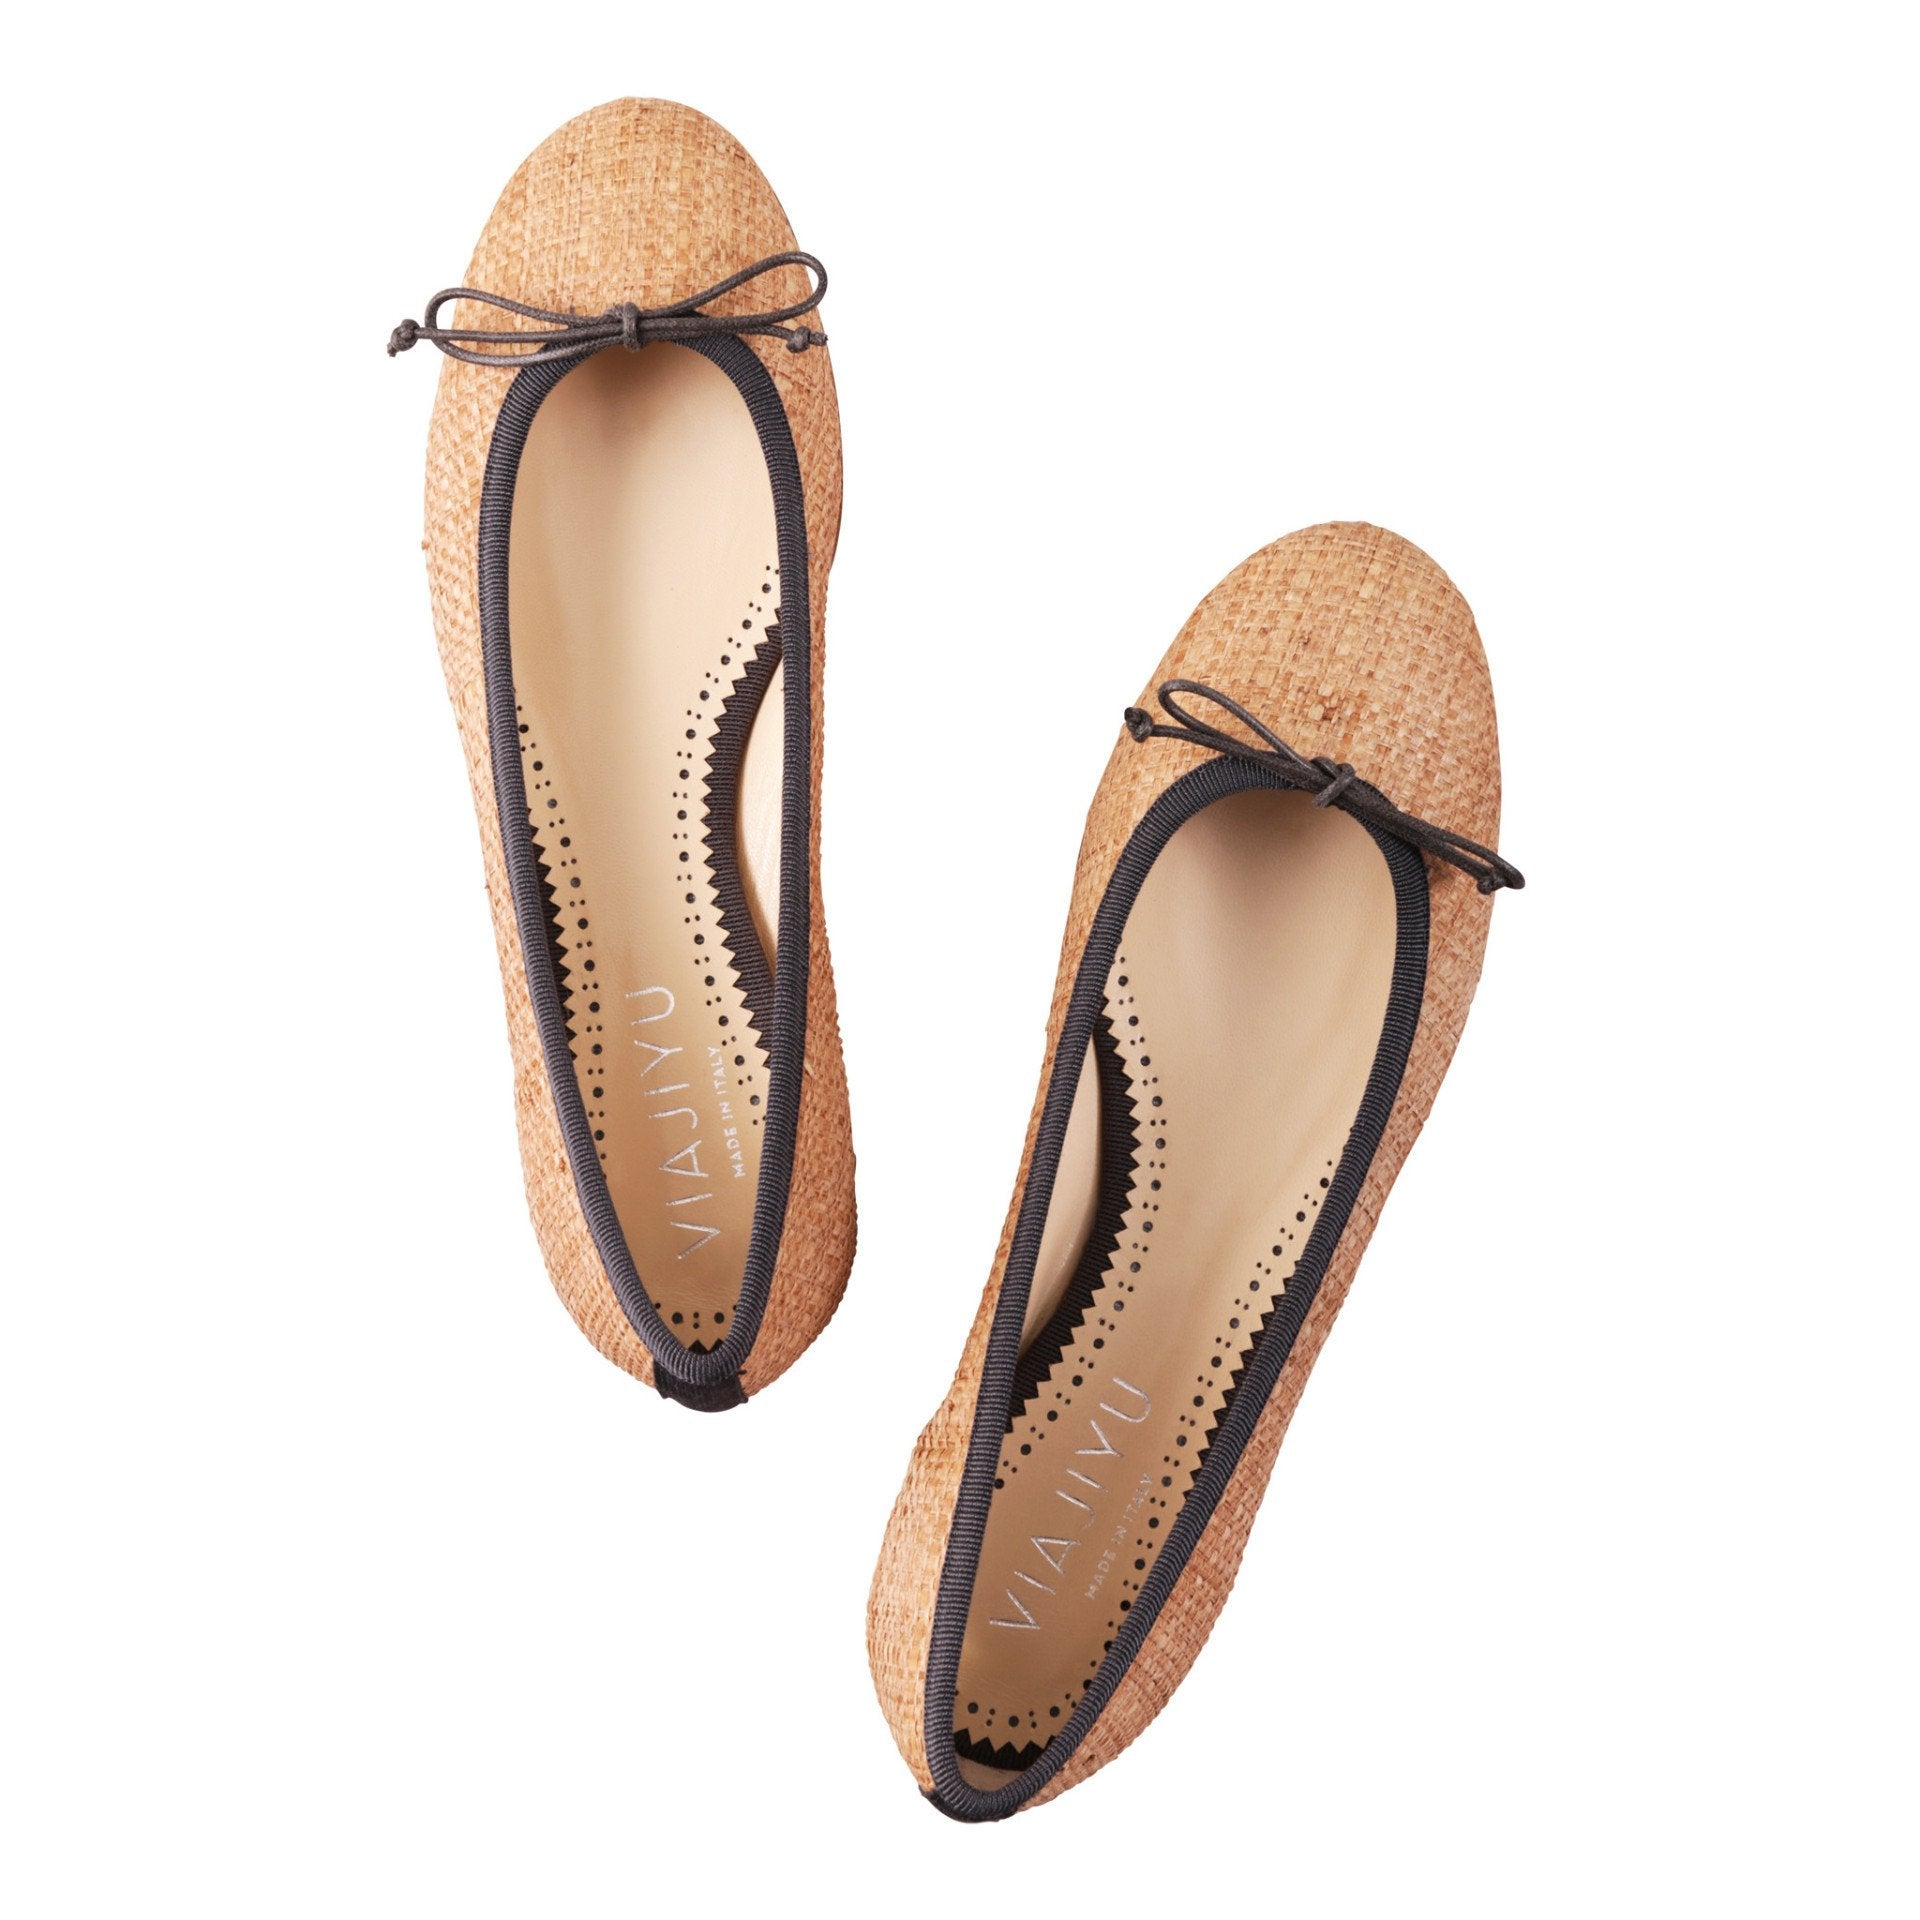 ROMA - Raffia Natural + Drawstring Ferro Bow, VIAJIYU - Women's Hand Made Sustainable Luxury Shoes. Made in Italy. Made to Order.